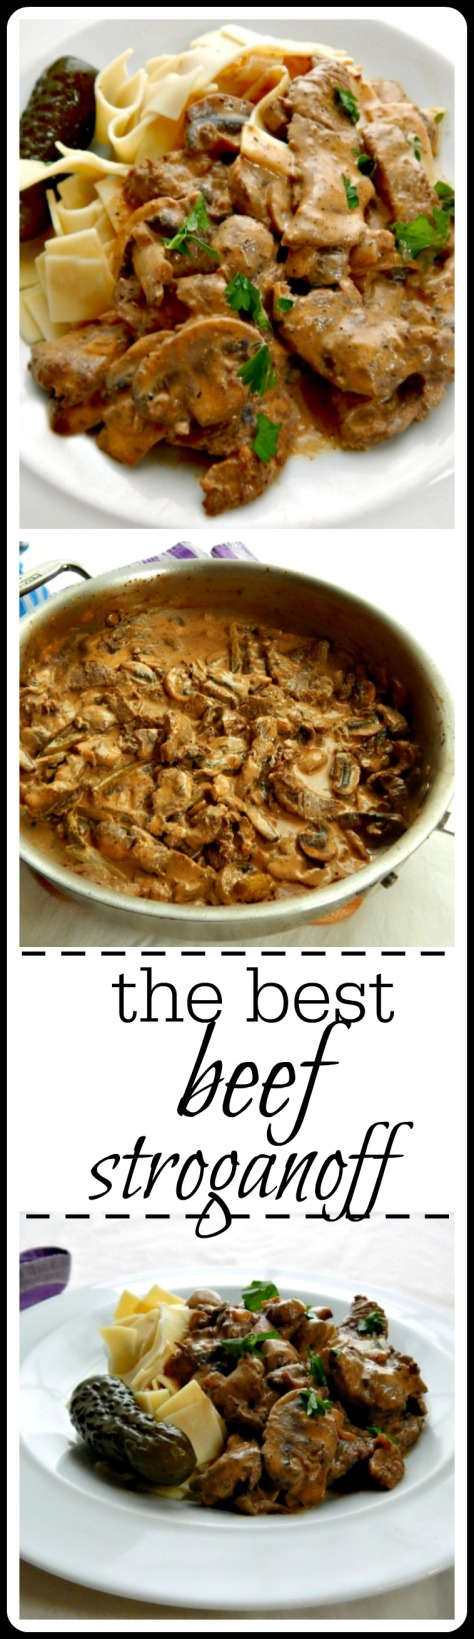 The Best Beef Stroganoff: This is really perfect - the recipe came from Russia